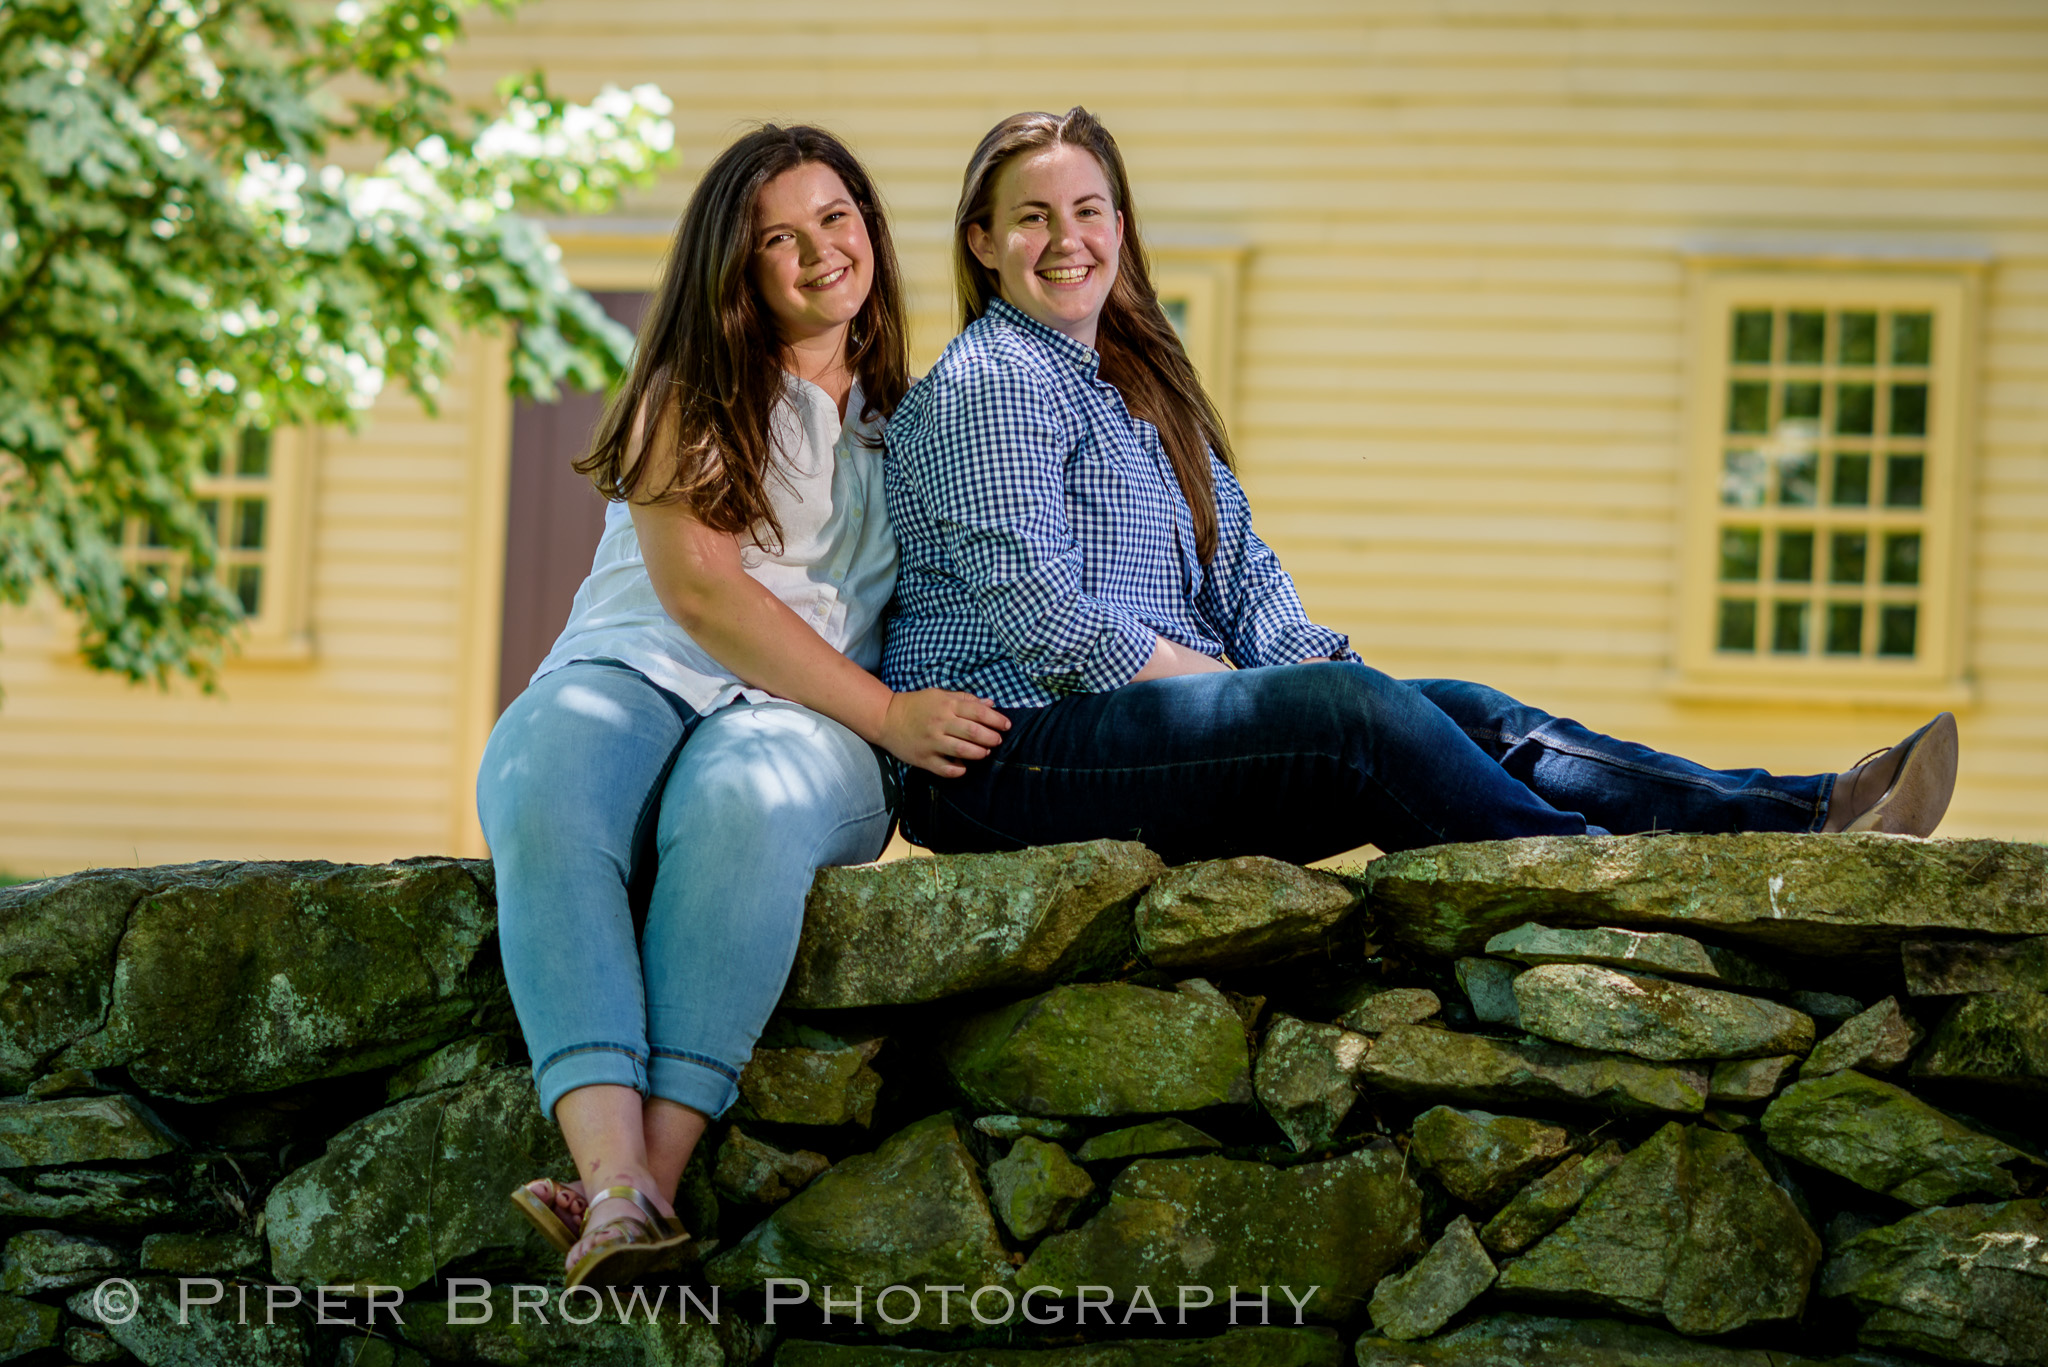 20190615-Smith Appleby House Engagement SessionMegan and Erin86.jpg